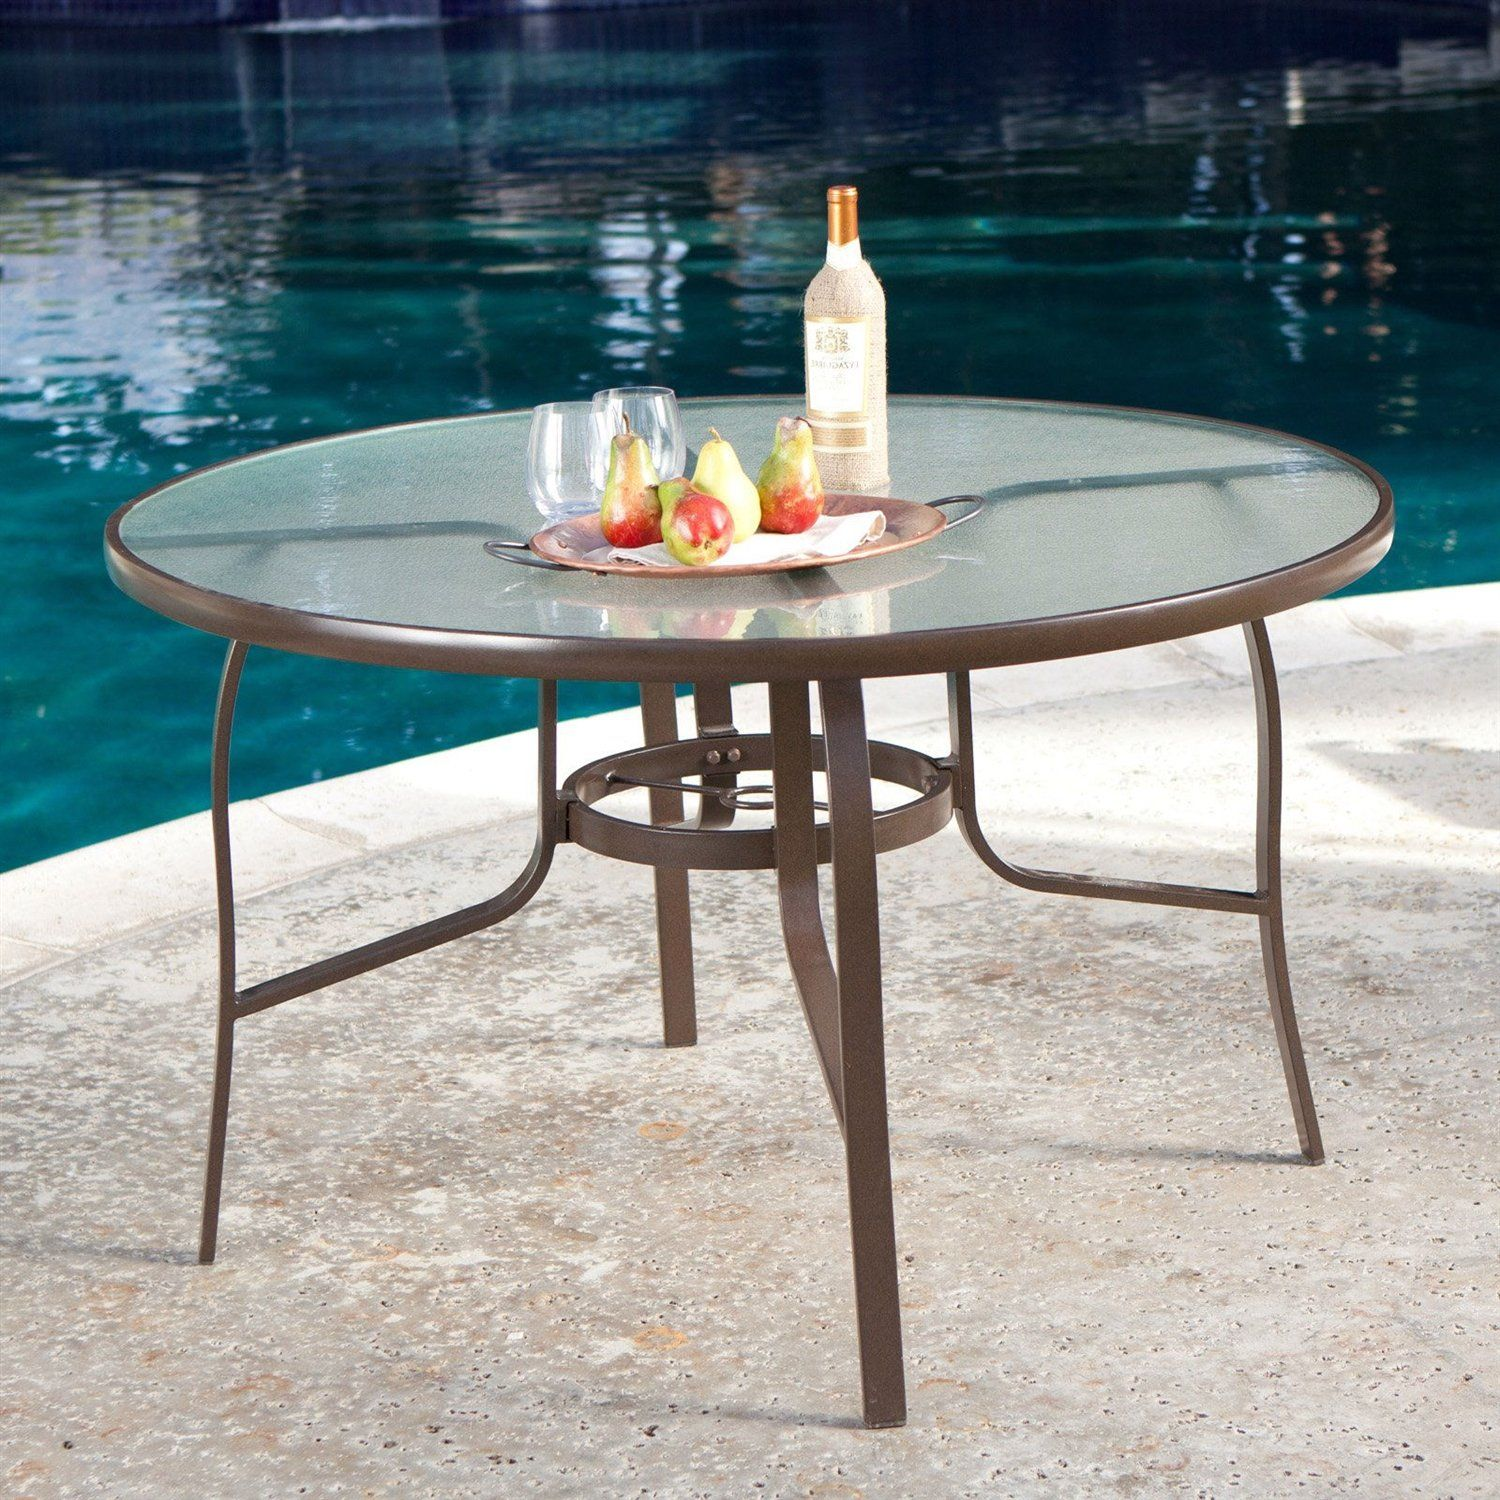 48 Inch Round Glass Top Outdoor Patio Dining Table With Umbrella